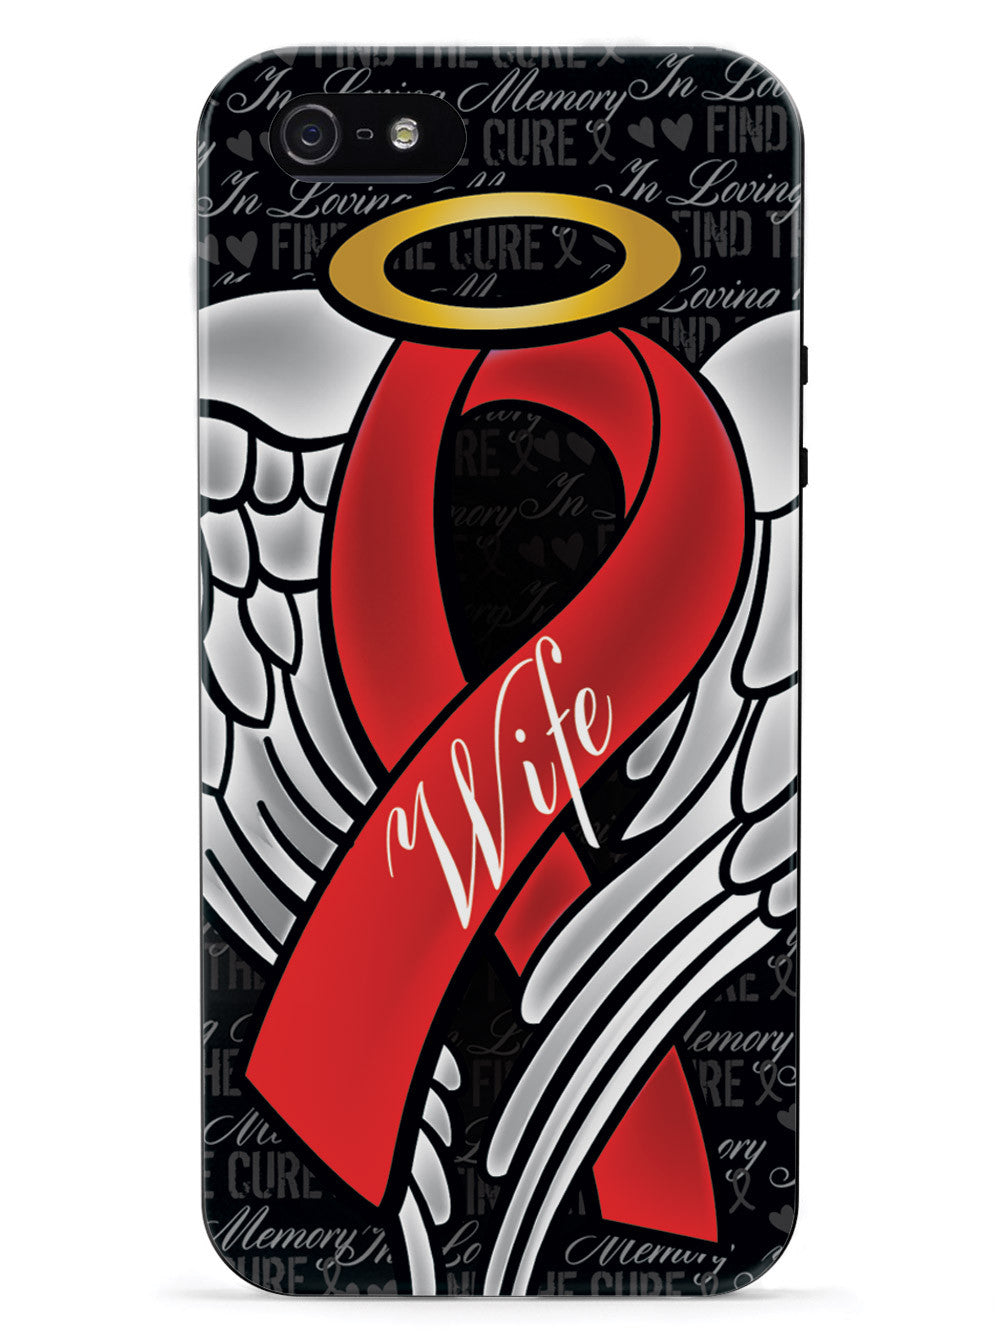 In Loving Memory of My Wife - Red Ribbon Case